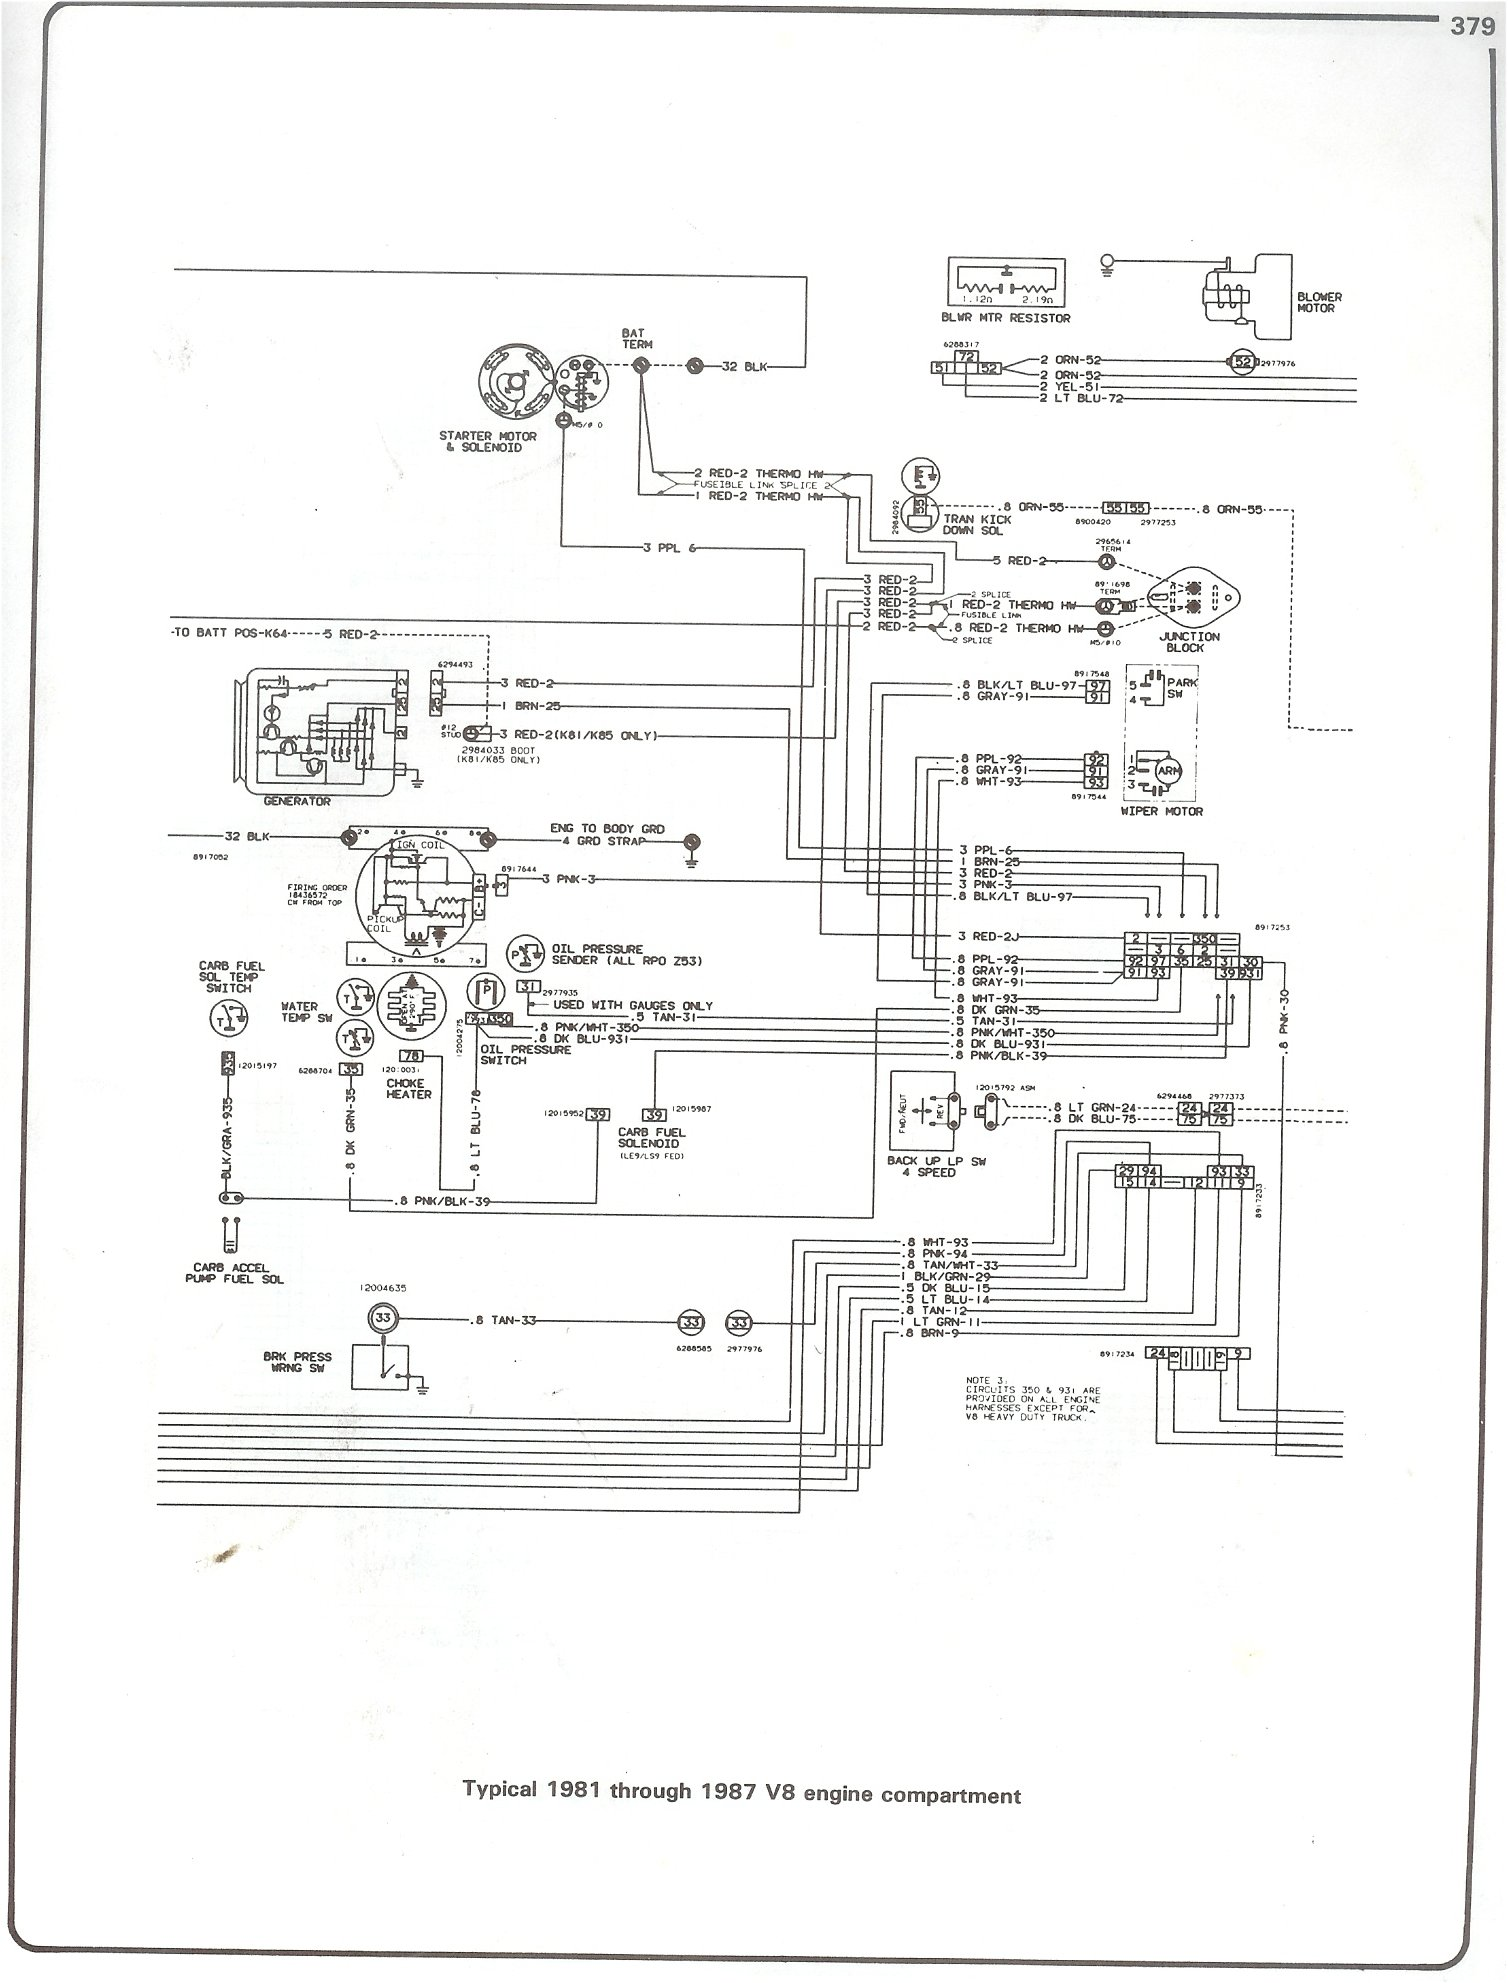 81 87_V8_engine complete 73 87 wiring diagrams 1987 chevy wiring diagram at soozxer.org